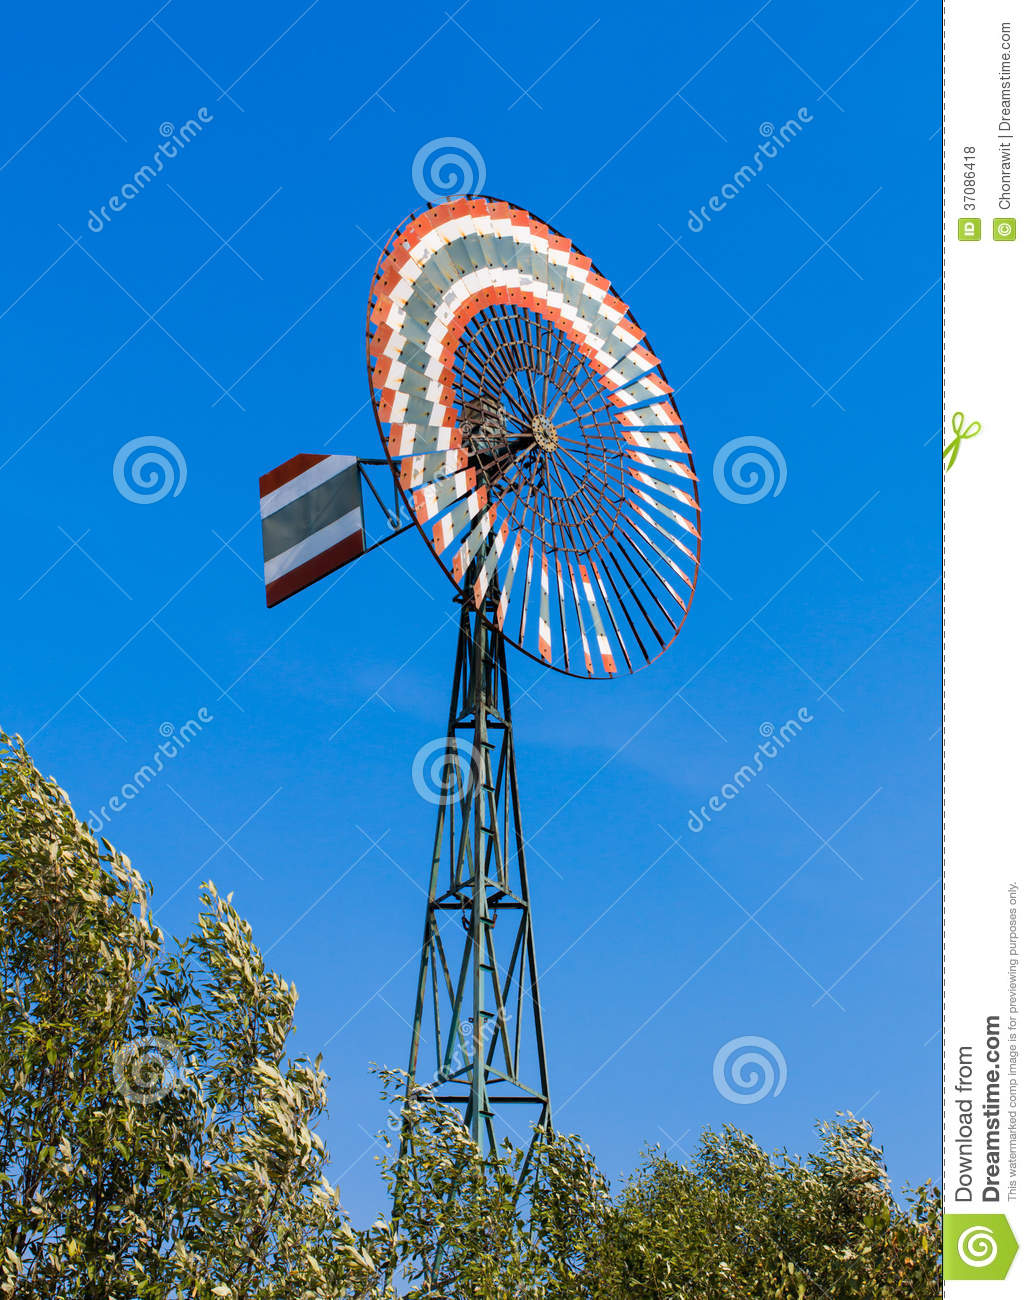 Windmill For Pumping Water Royalty Free Stock Photos ...